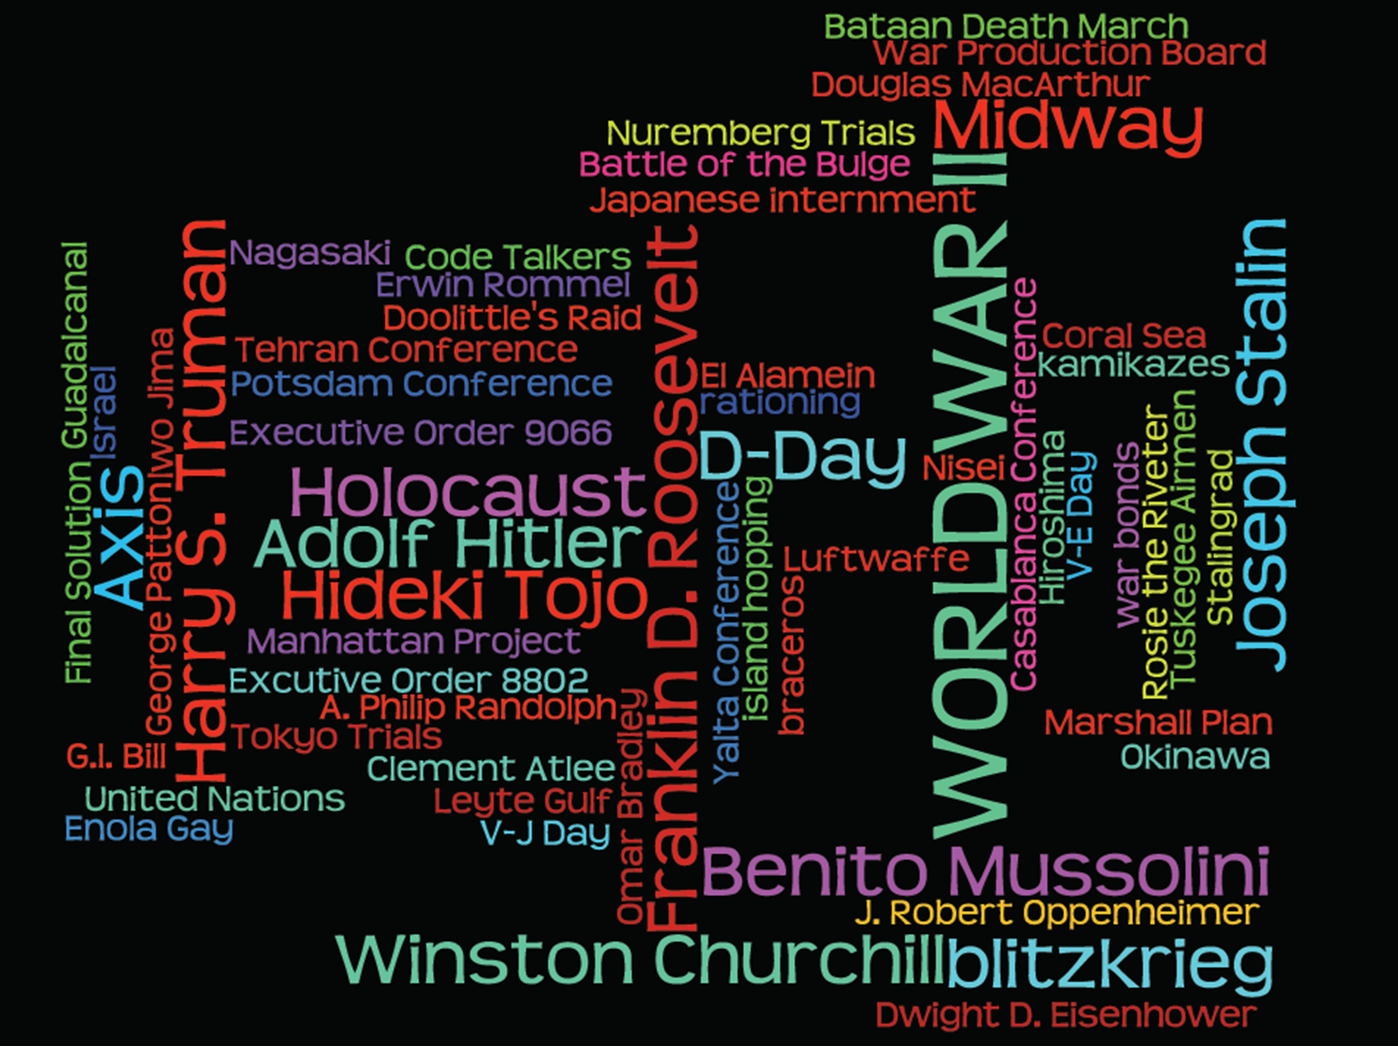 Created by M. Spencer with wordle.net